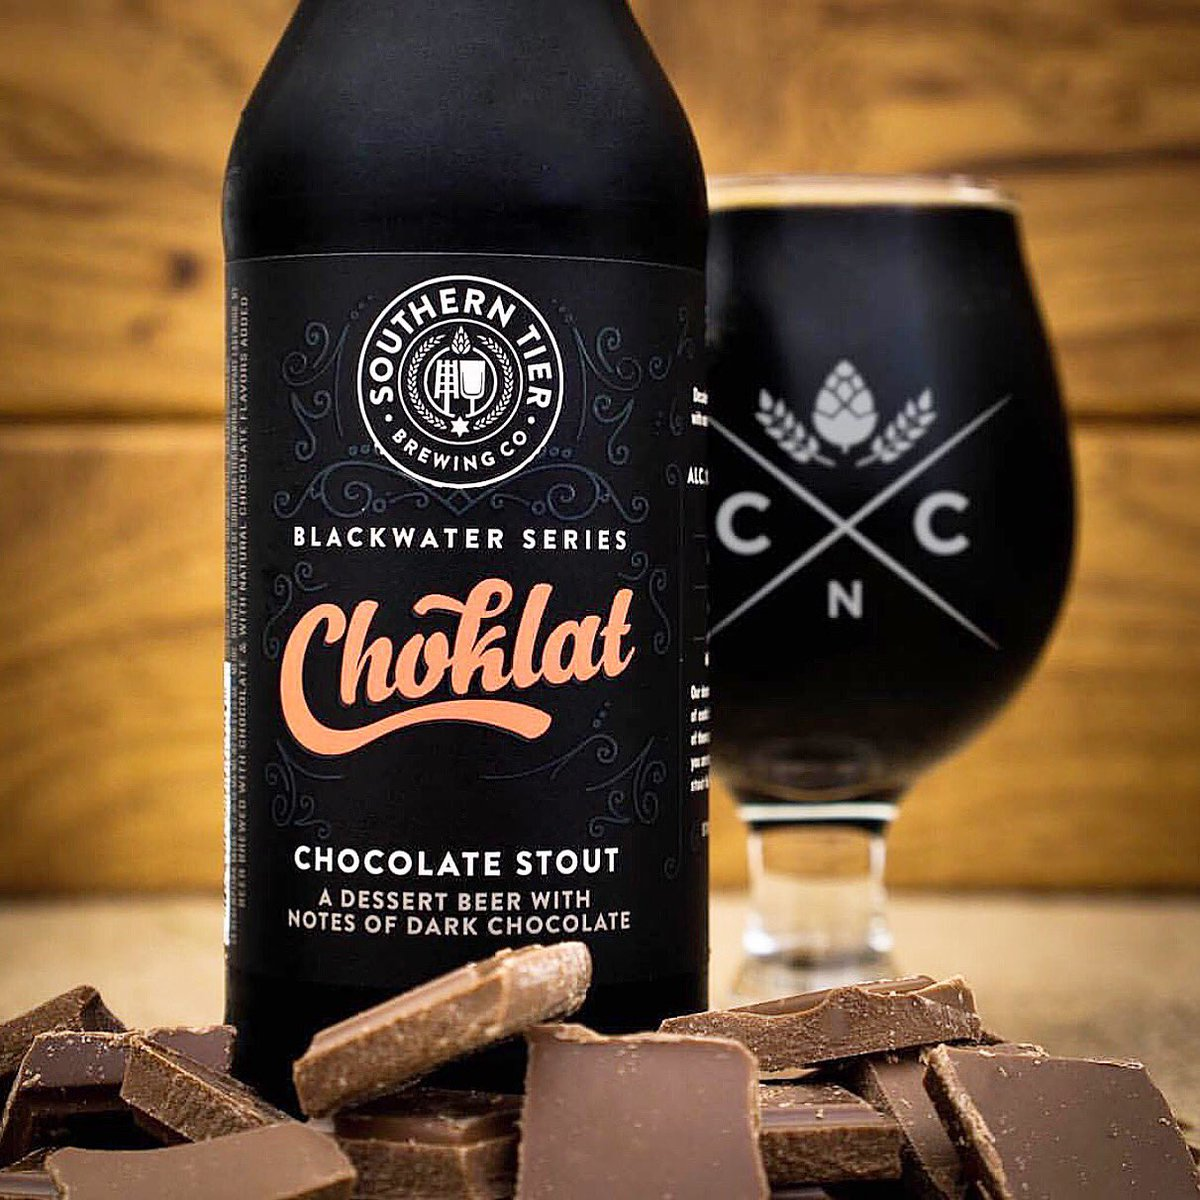 "Blackwater Series <a target=""_blank"" rel=""nofollow"" href=""https://twitter.com/#!/search?q=%23Choklat"" class=""hashtag"">#<strong>Choklat</strong></a>. The definition of dessert beer. <a target=""_blank"" rel=""nofollow"" href=""https://twitter.com/#!/search?q=%23GoGetYouSome"" class=""hashtag"">#<strong>GoGetYouSome</strong></a> <a target=""_blank"" rel=""nofollow"" href=""https://t.co/wWdXGmfbWD"">https://t.co/wWdXGmfbWD</a> <a target=""_blank"" rel=""nofollow"" href=""https://t.co/W9cd5pMJST"">https://t.co/W9cd5pMJST</a>"